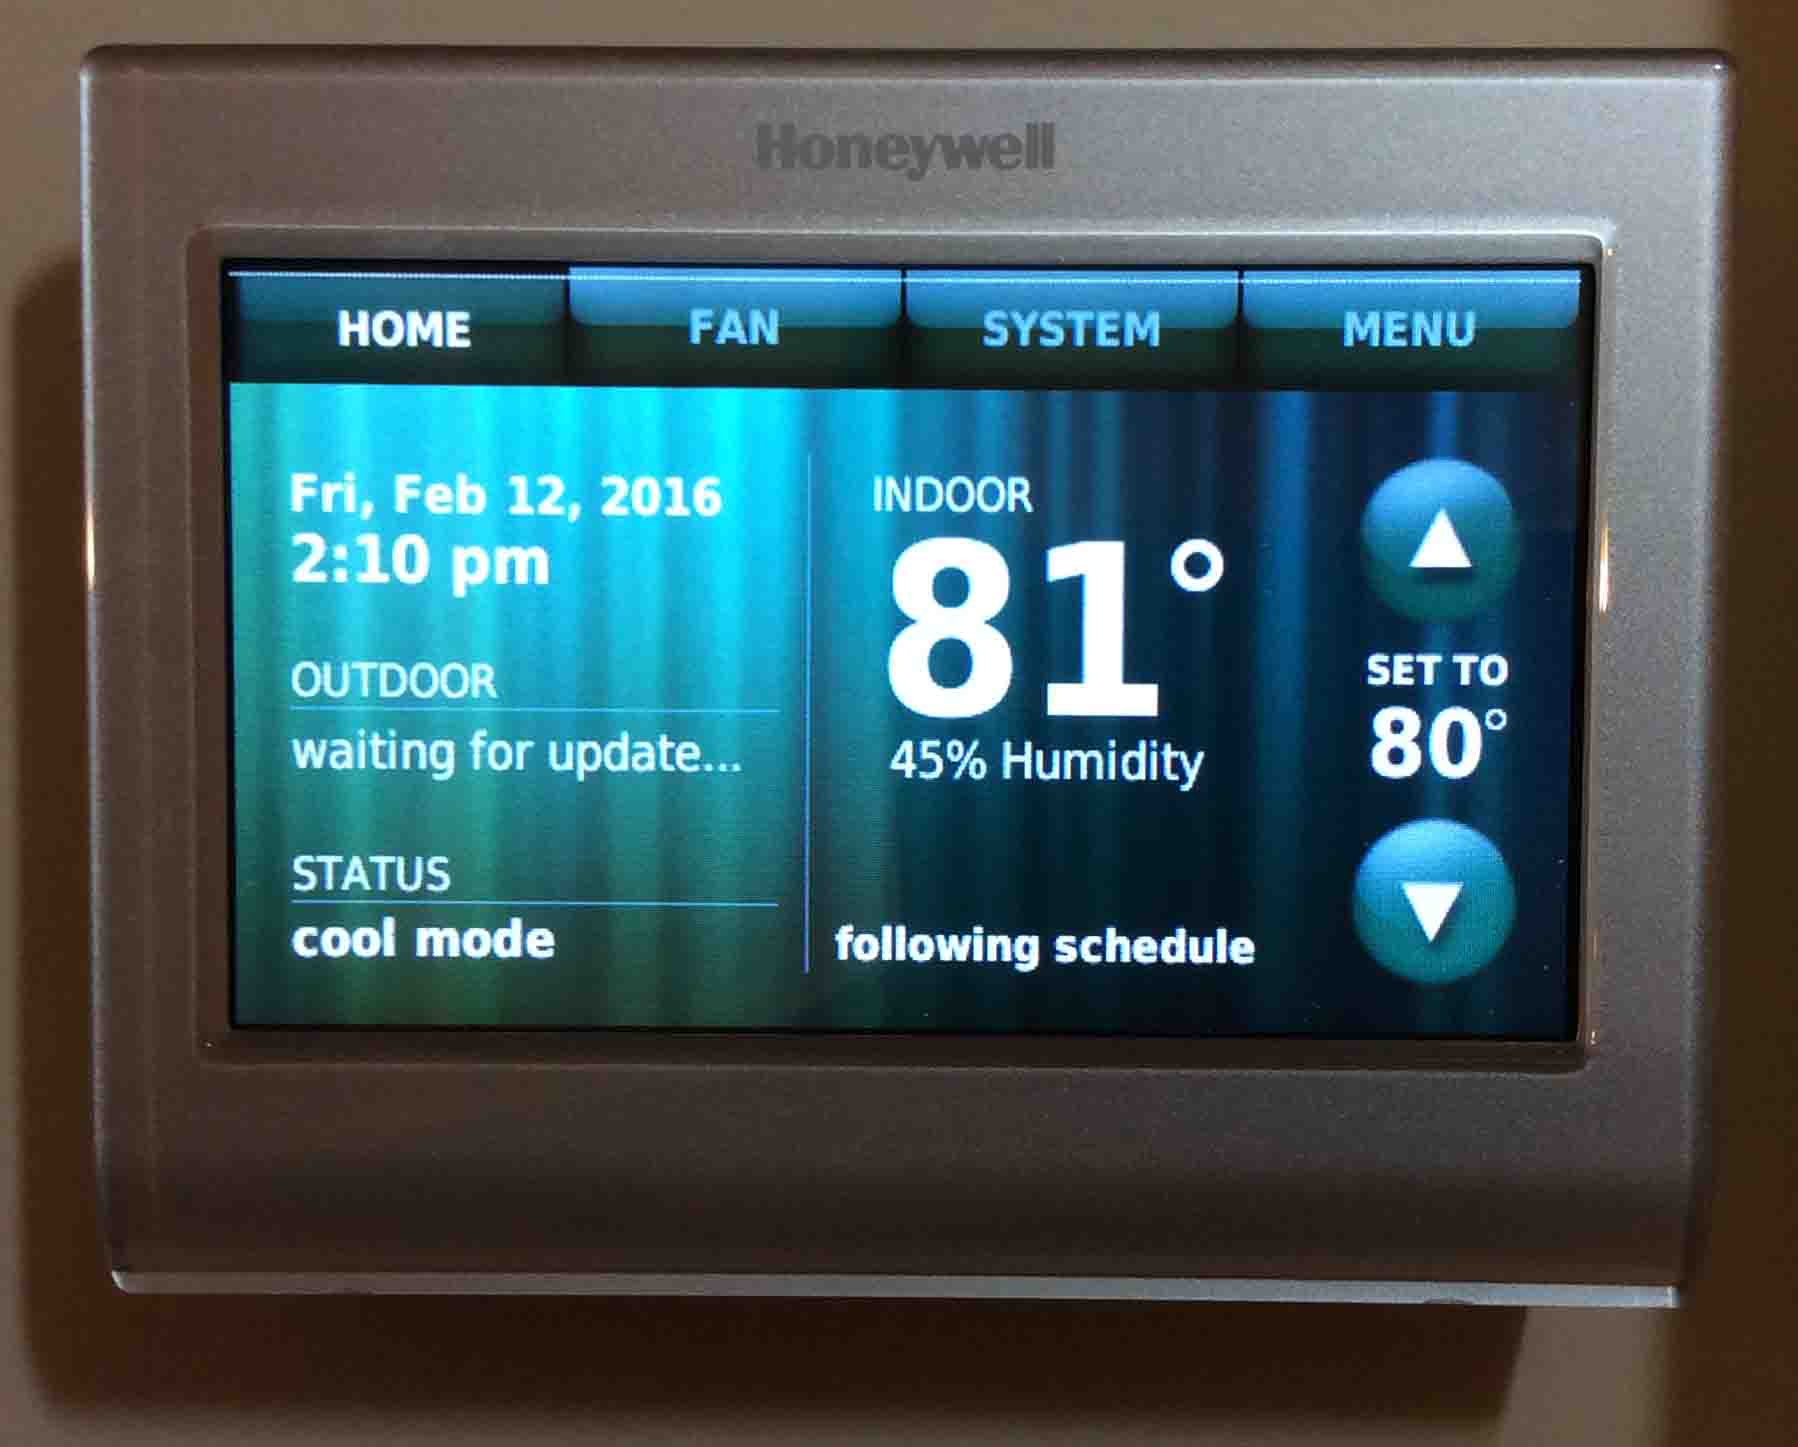 Honeywell Thermostat Problems Manual - User Guide Manual That Easy ...